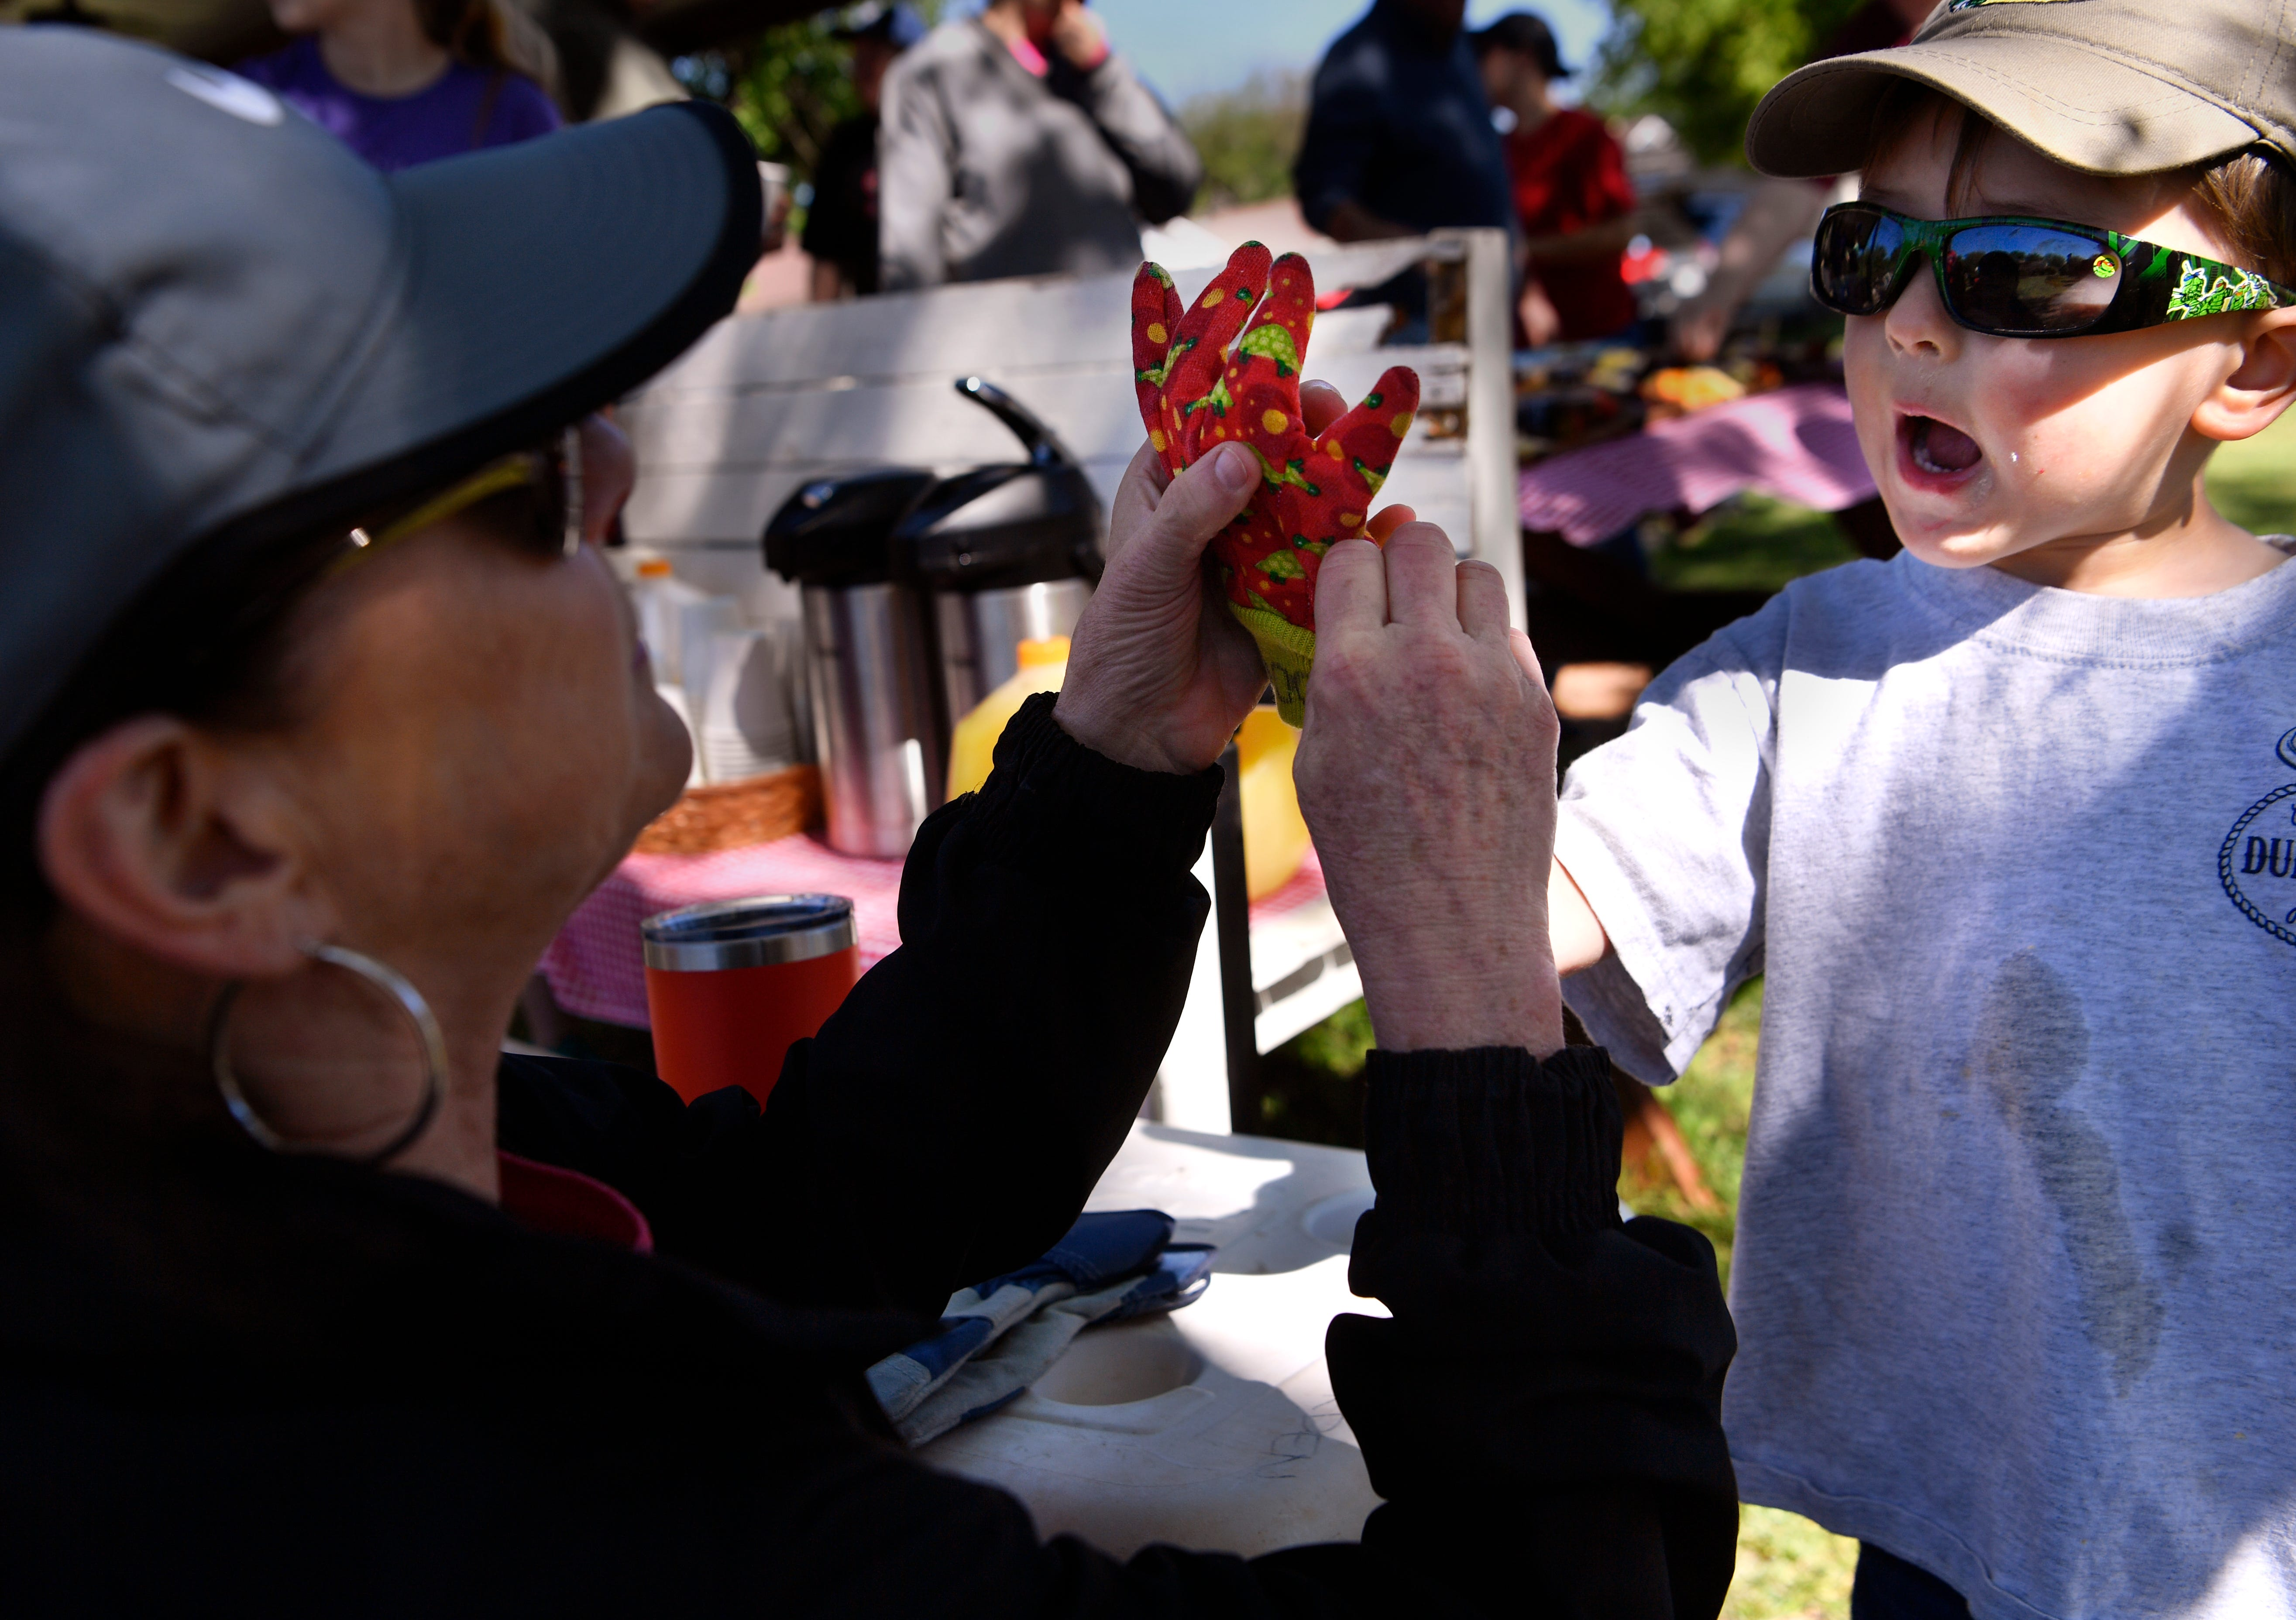 Lora Brinkman tries for the second time to get a glove on the hand of her 3-year-old grandson, Royce.